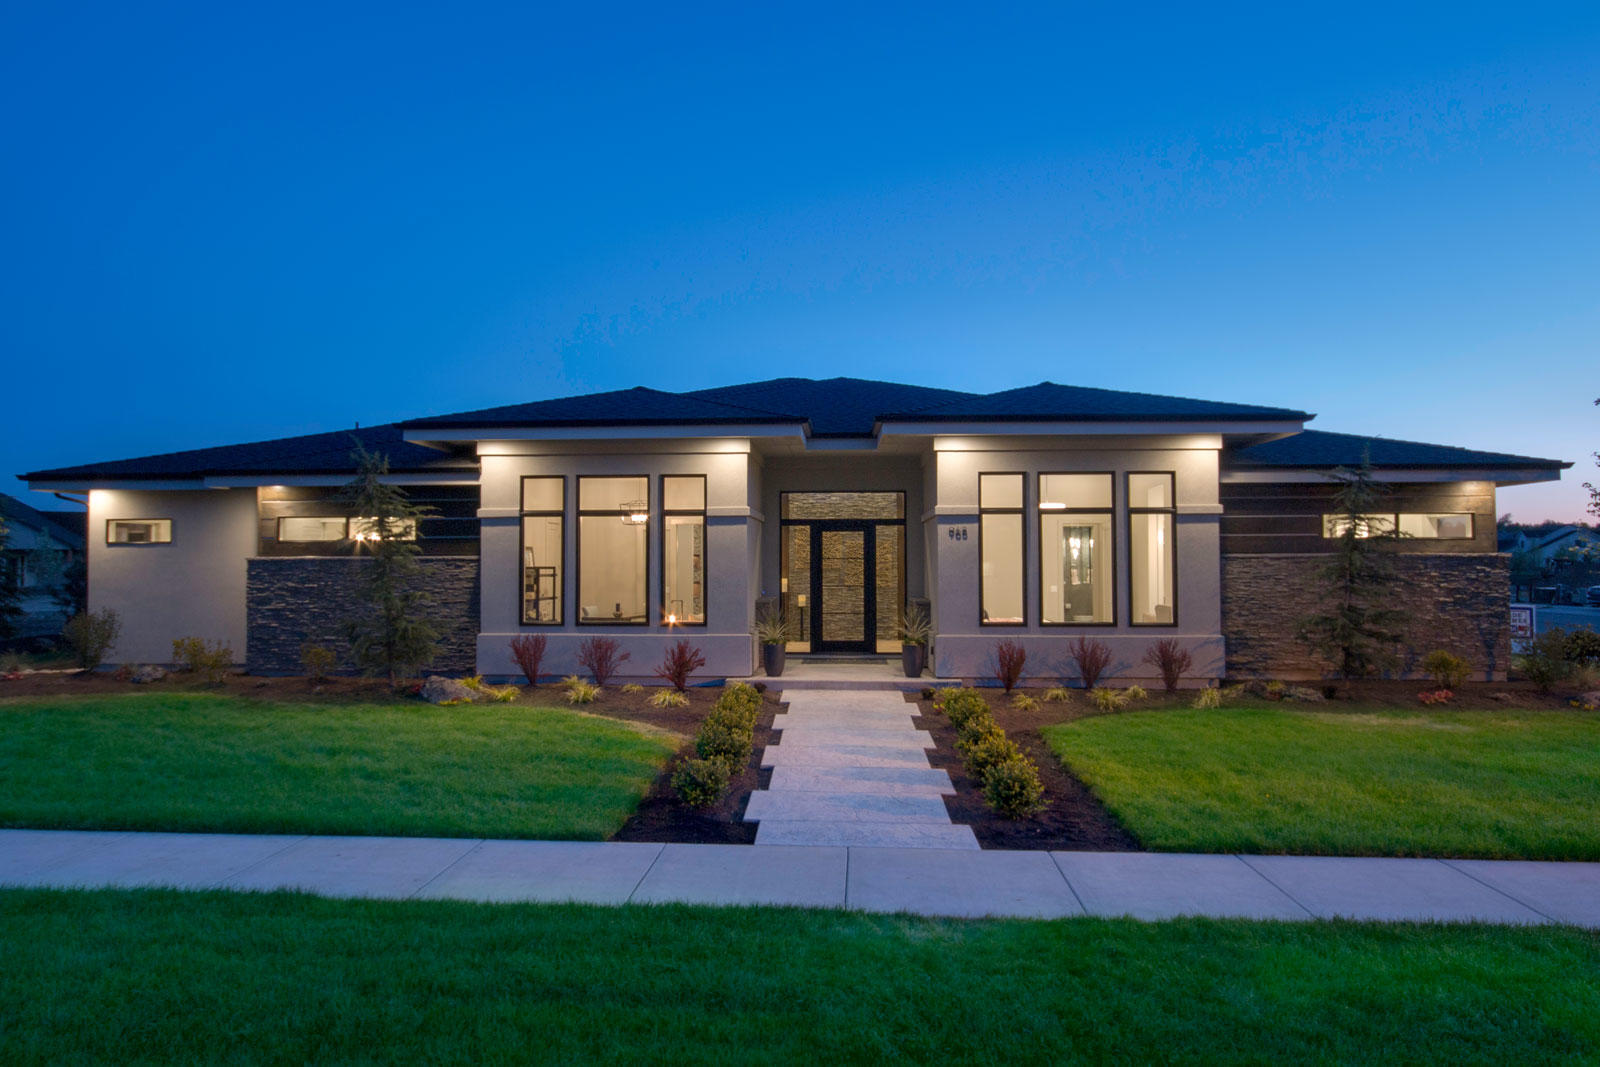 Full Sail /  Build Idaho. A Keller Williams Realty Boise Real Estate Team image 4